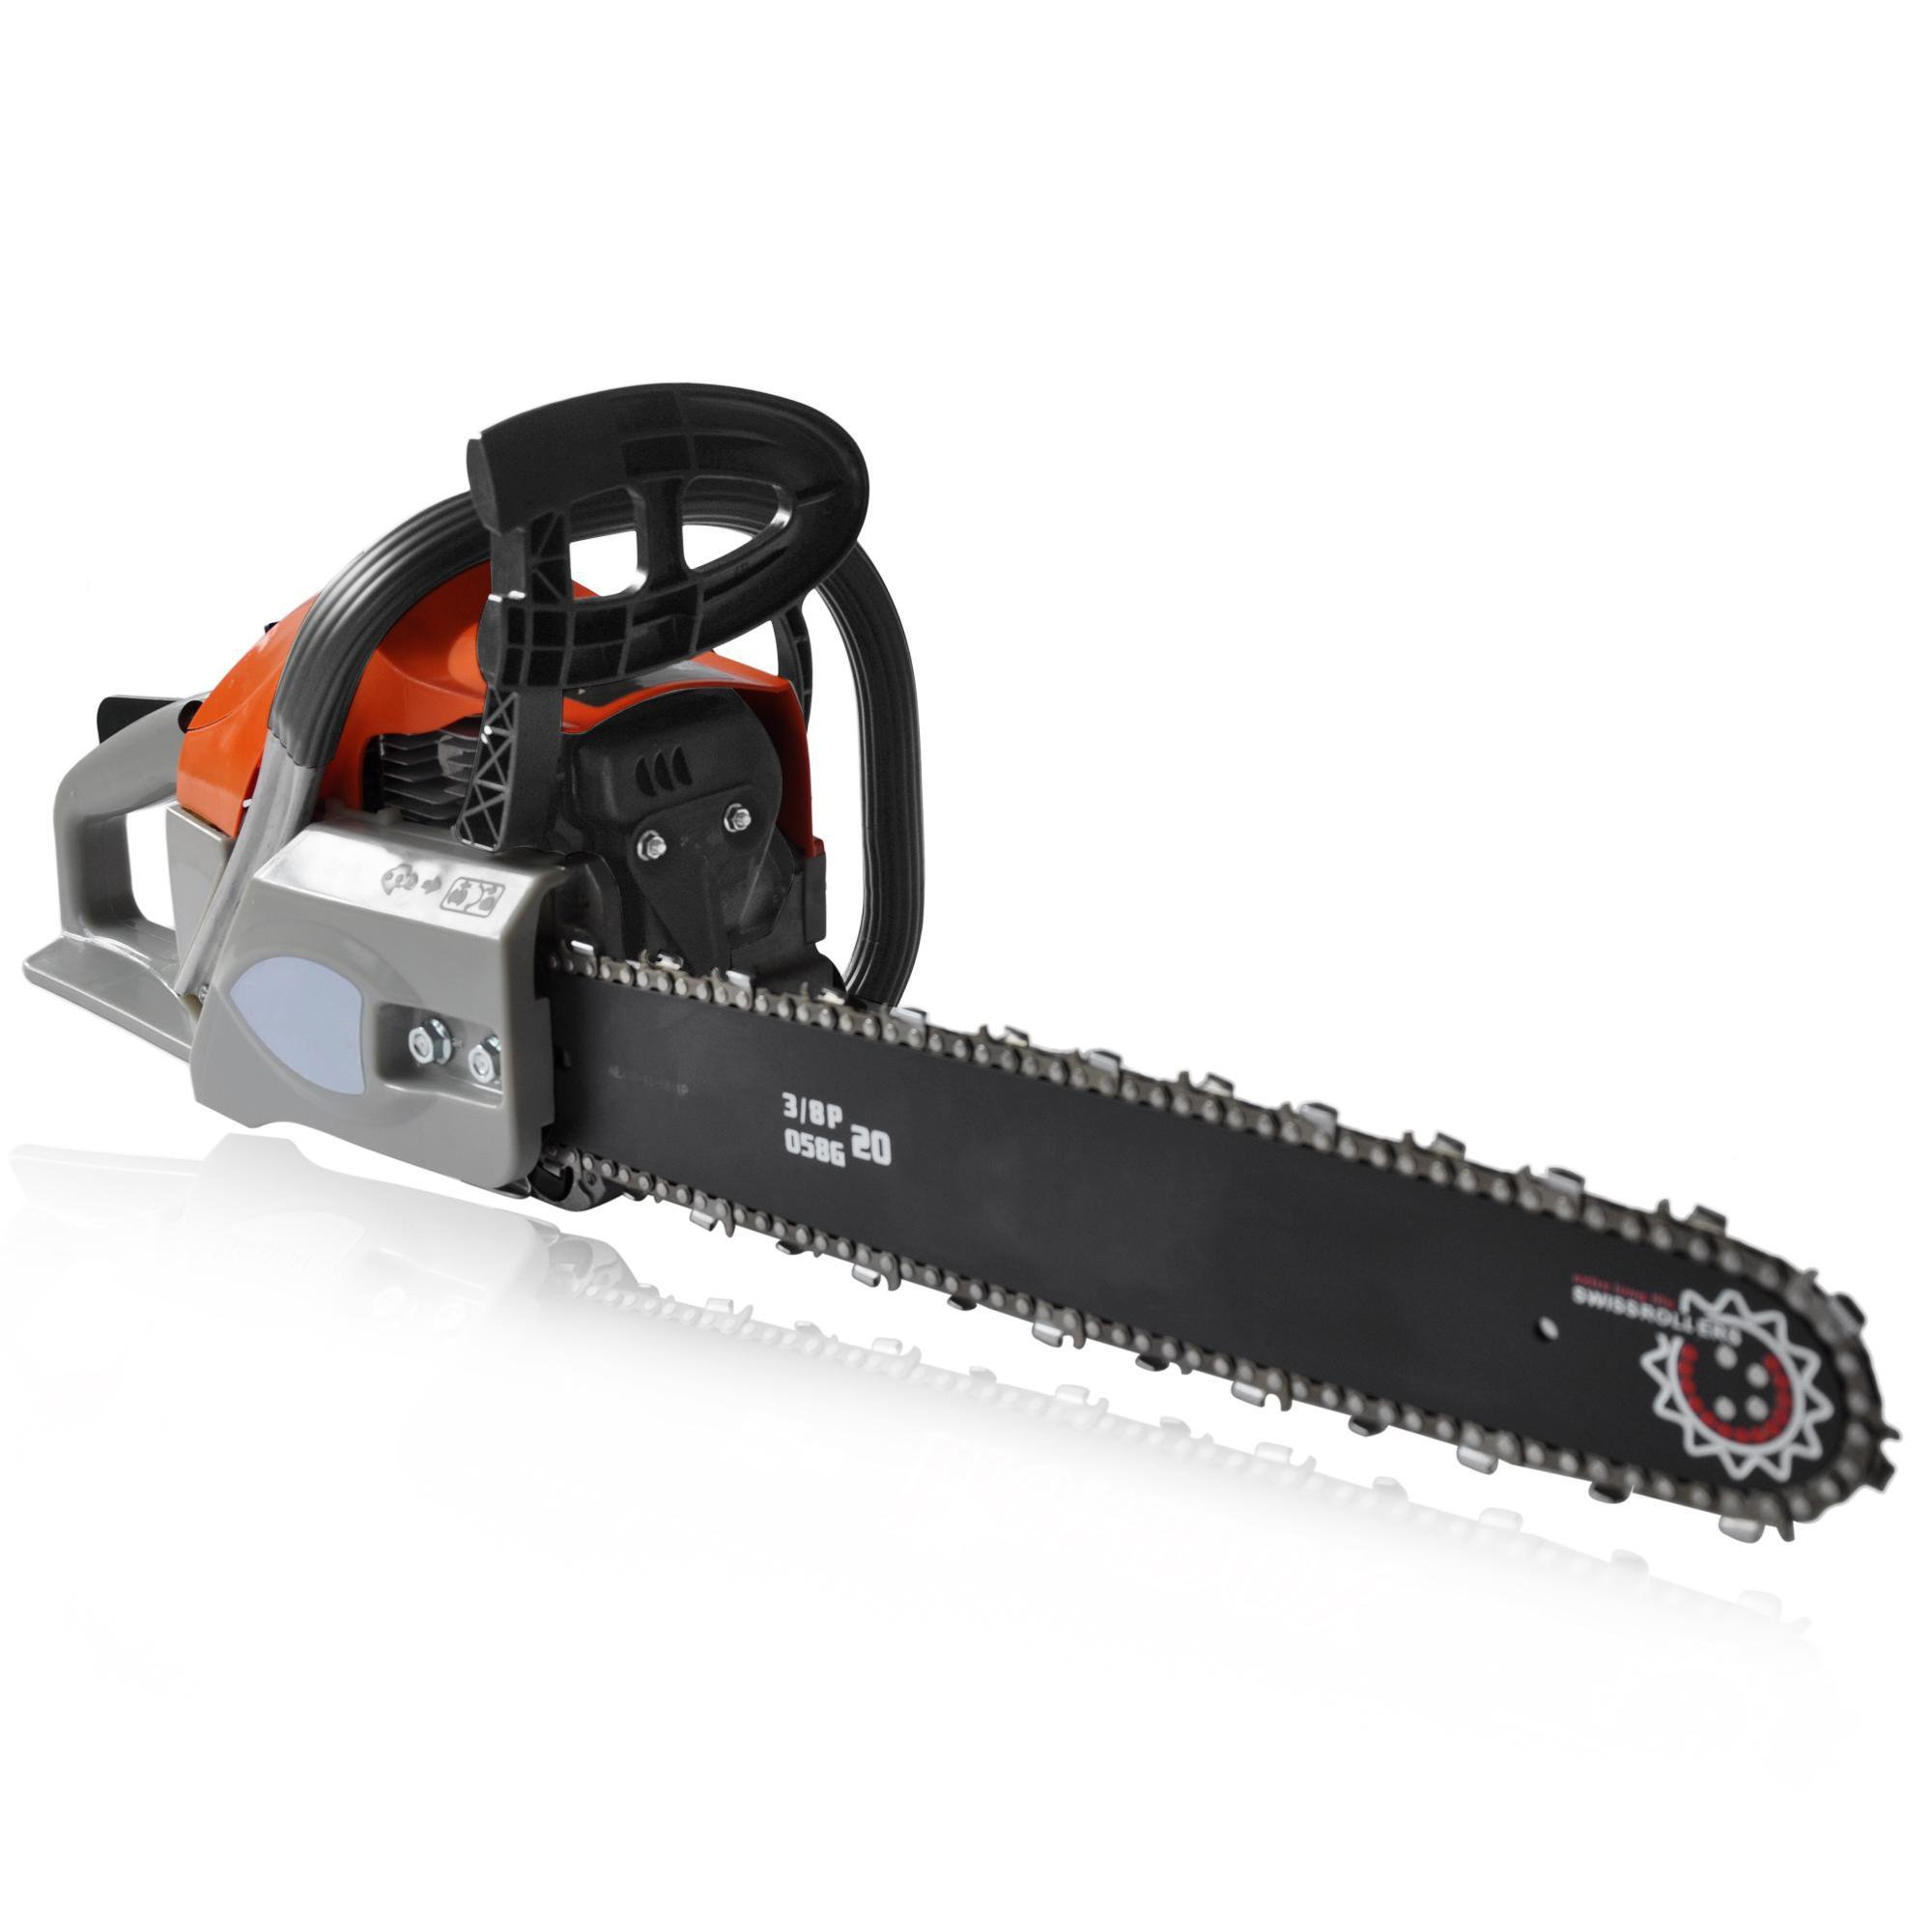 Leoneva 62cc 2 Stroke 20-Inch Cutting Wood Gas Chainsaw with Carrying Case, 4.2HP Engine/Automatic carburetor